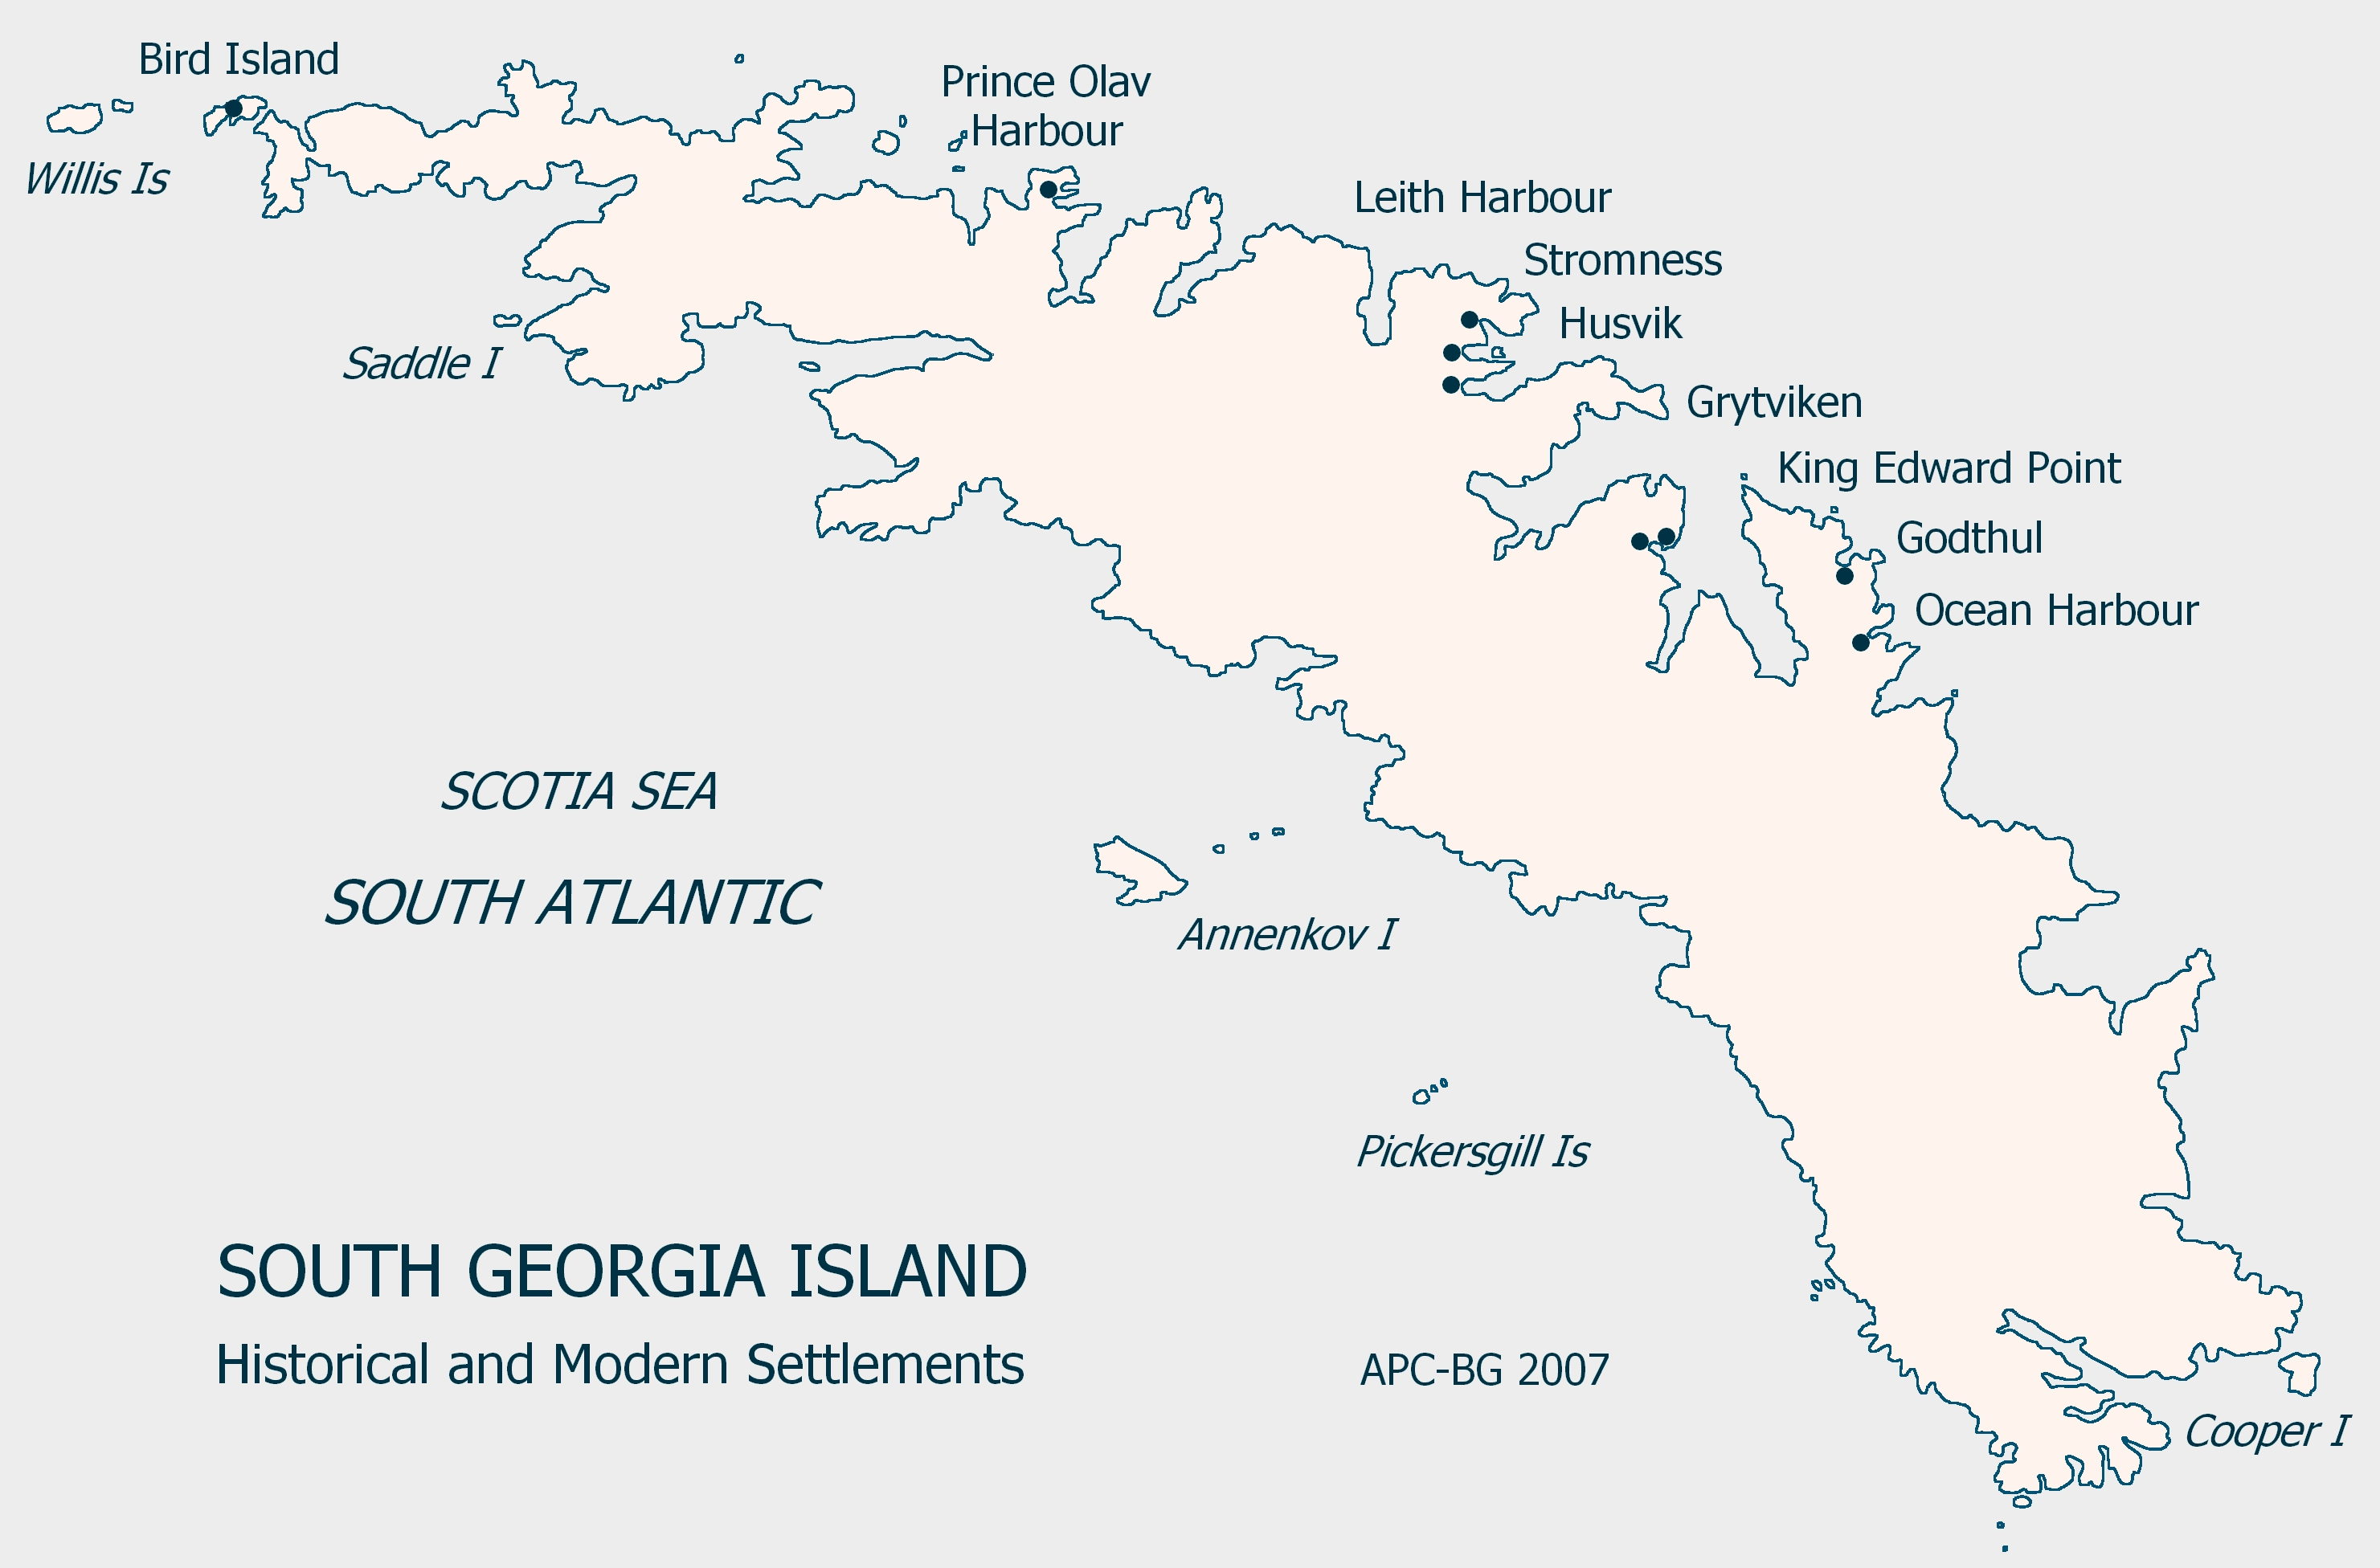 South Georgia Island Settlement Map - South Georgia and South ...